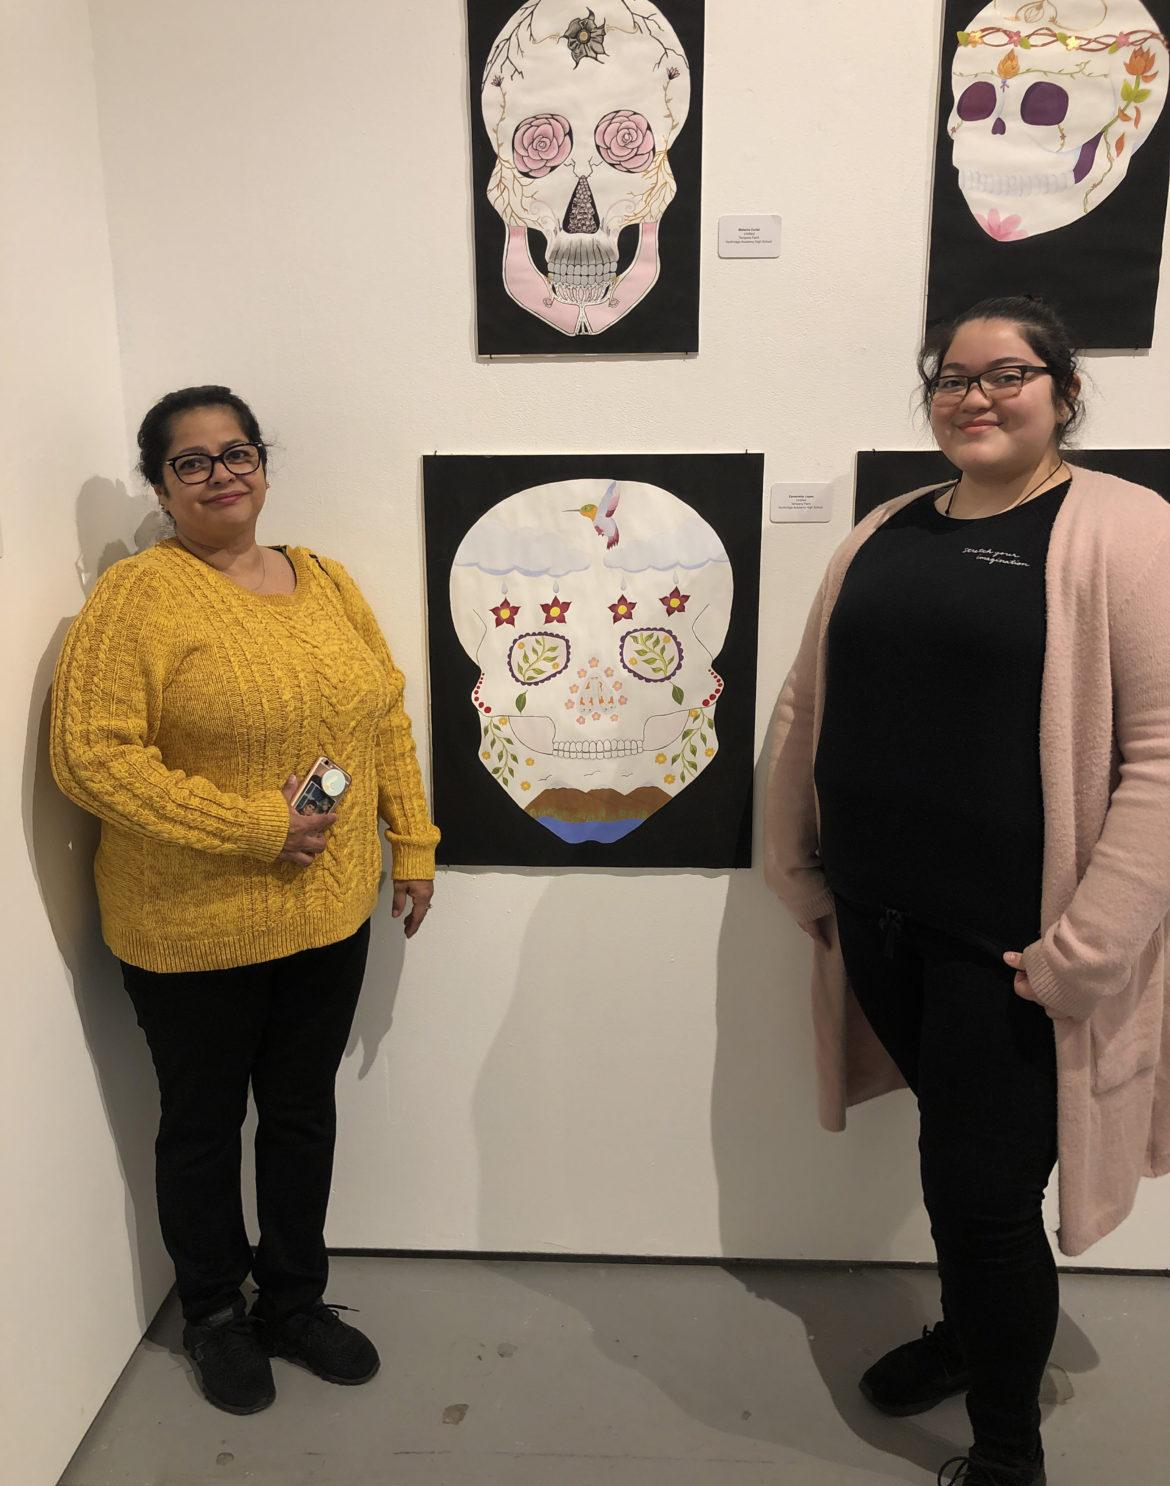 Two ladies taking picuture with a skull drawing